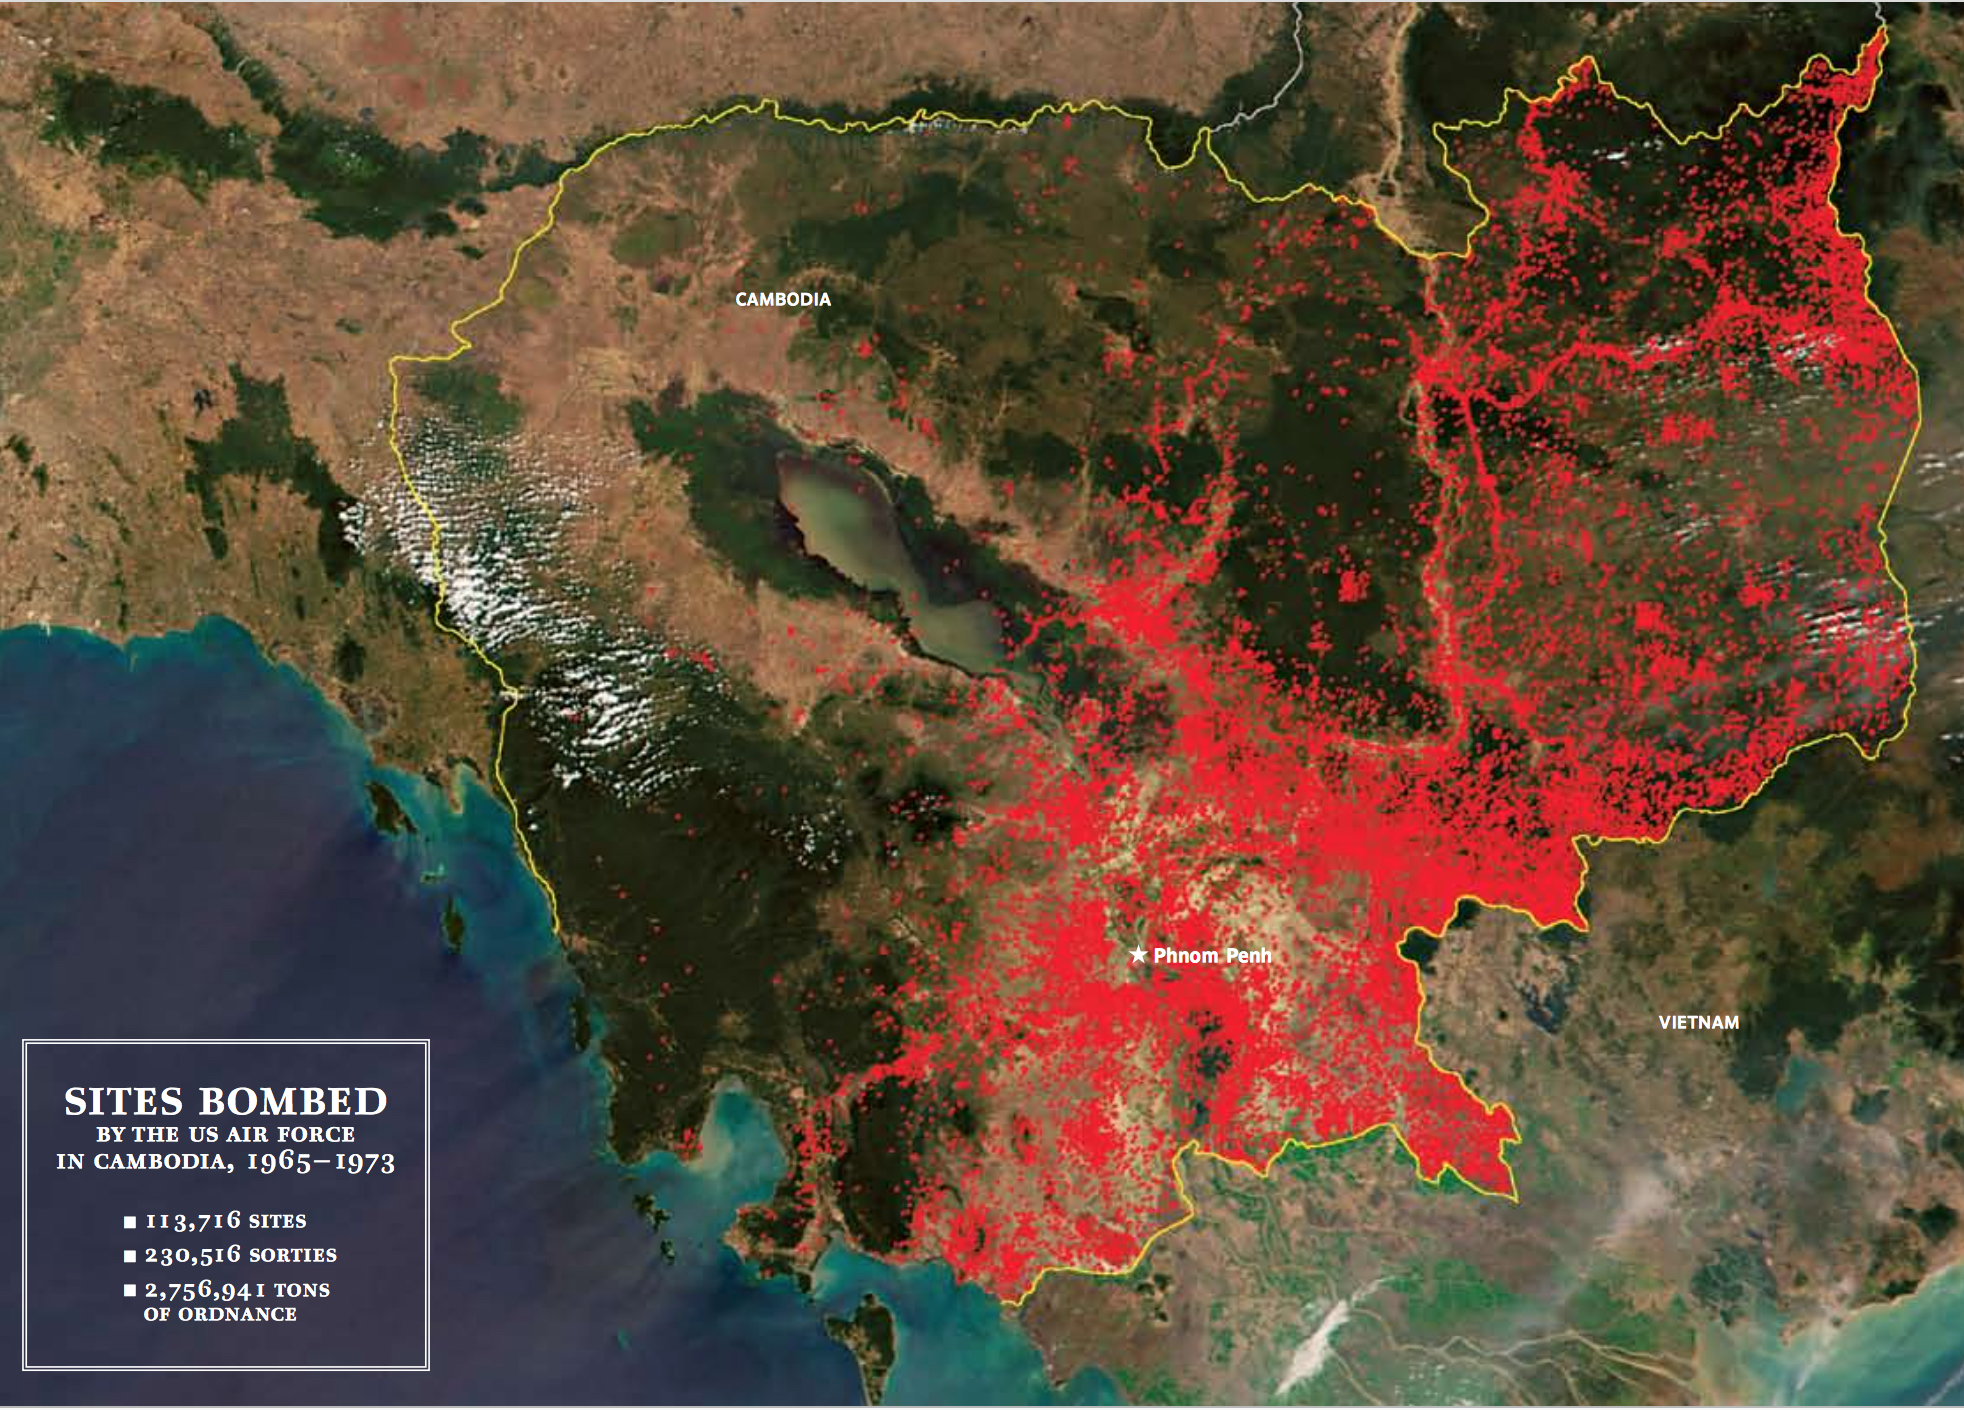 Where US Air FOrce Bombed Cambodia